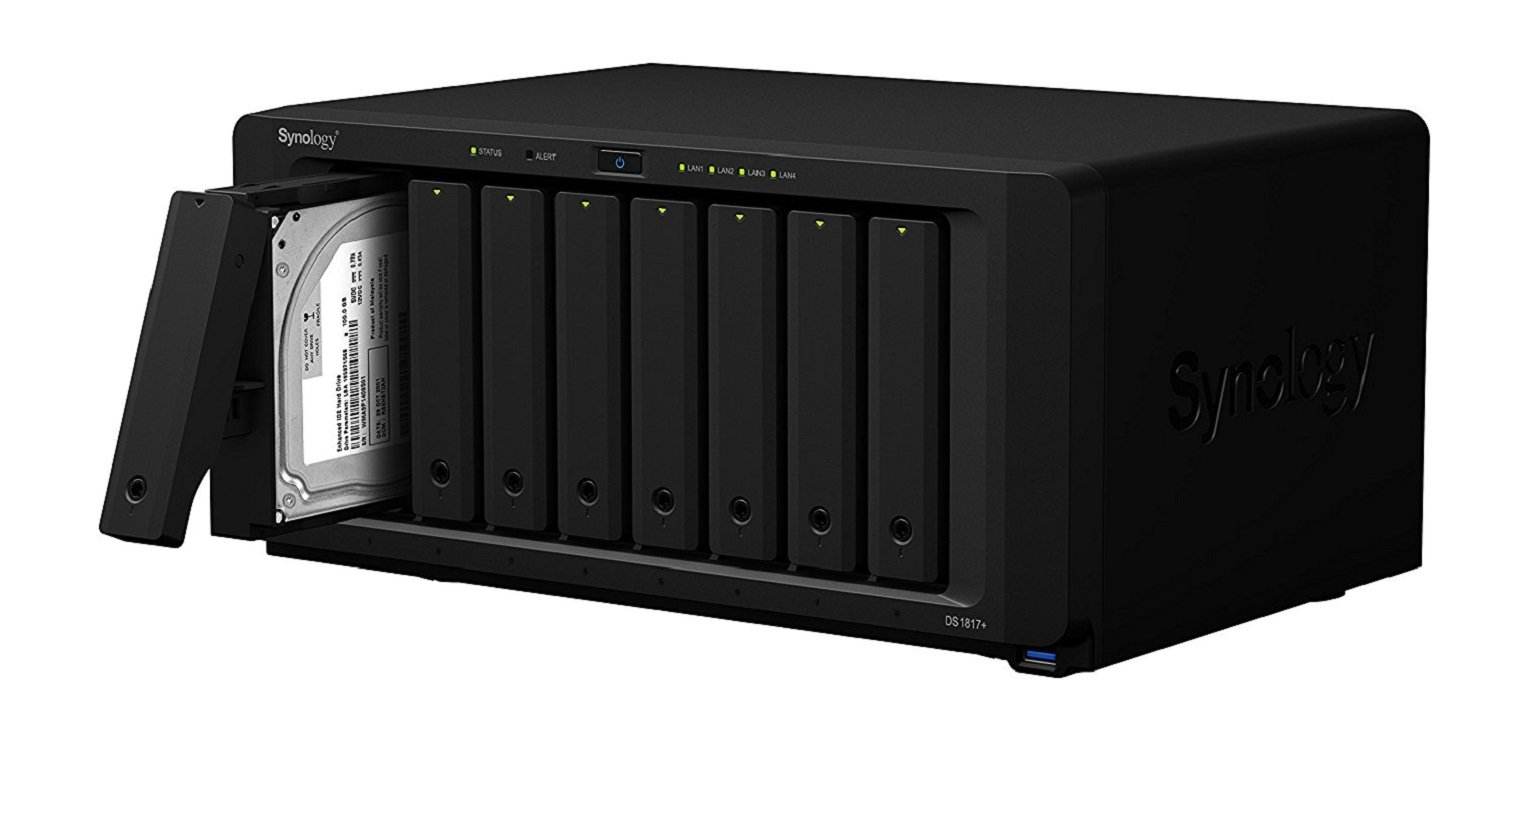 Synology DS1817+ (8GB) 8 - bay NAS Disk Station (Diskless) by Synology (Image #7)